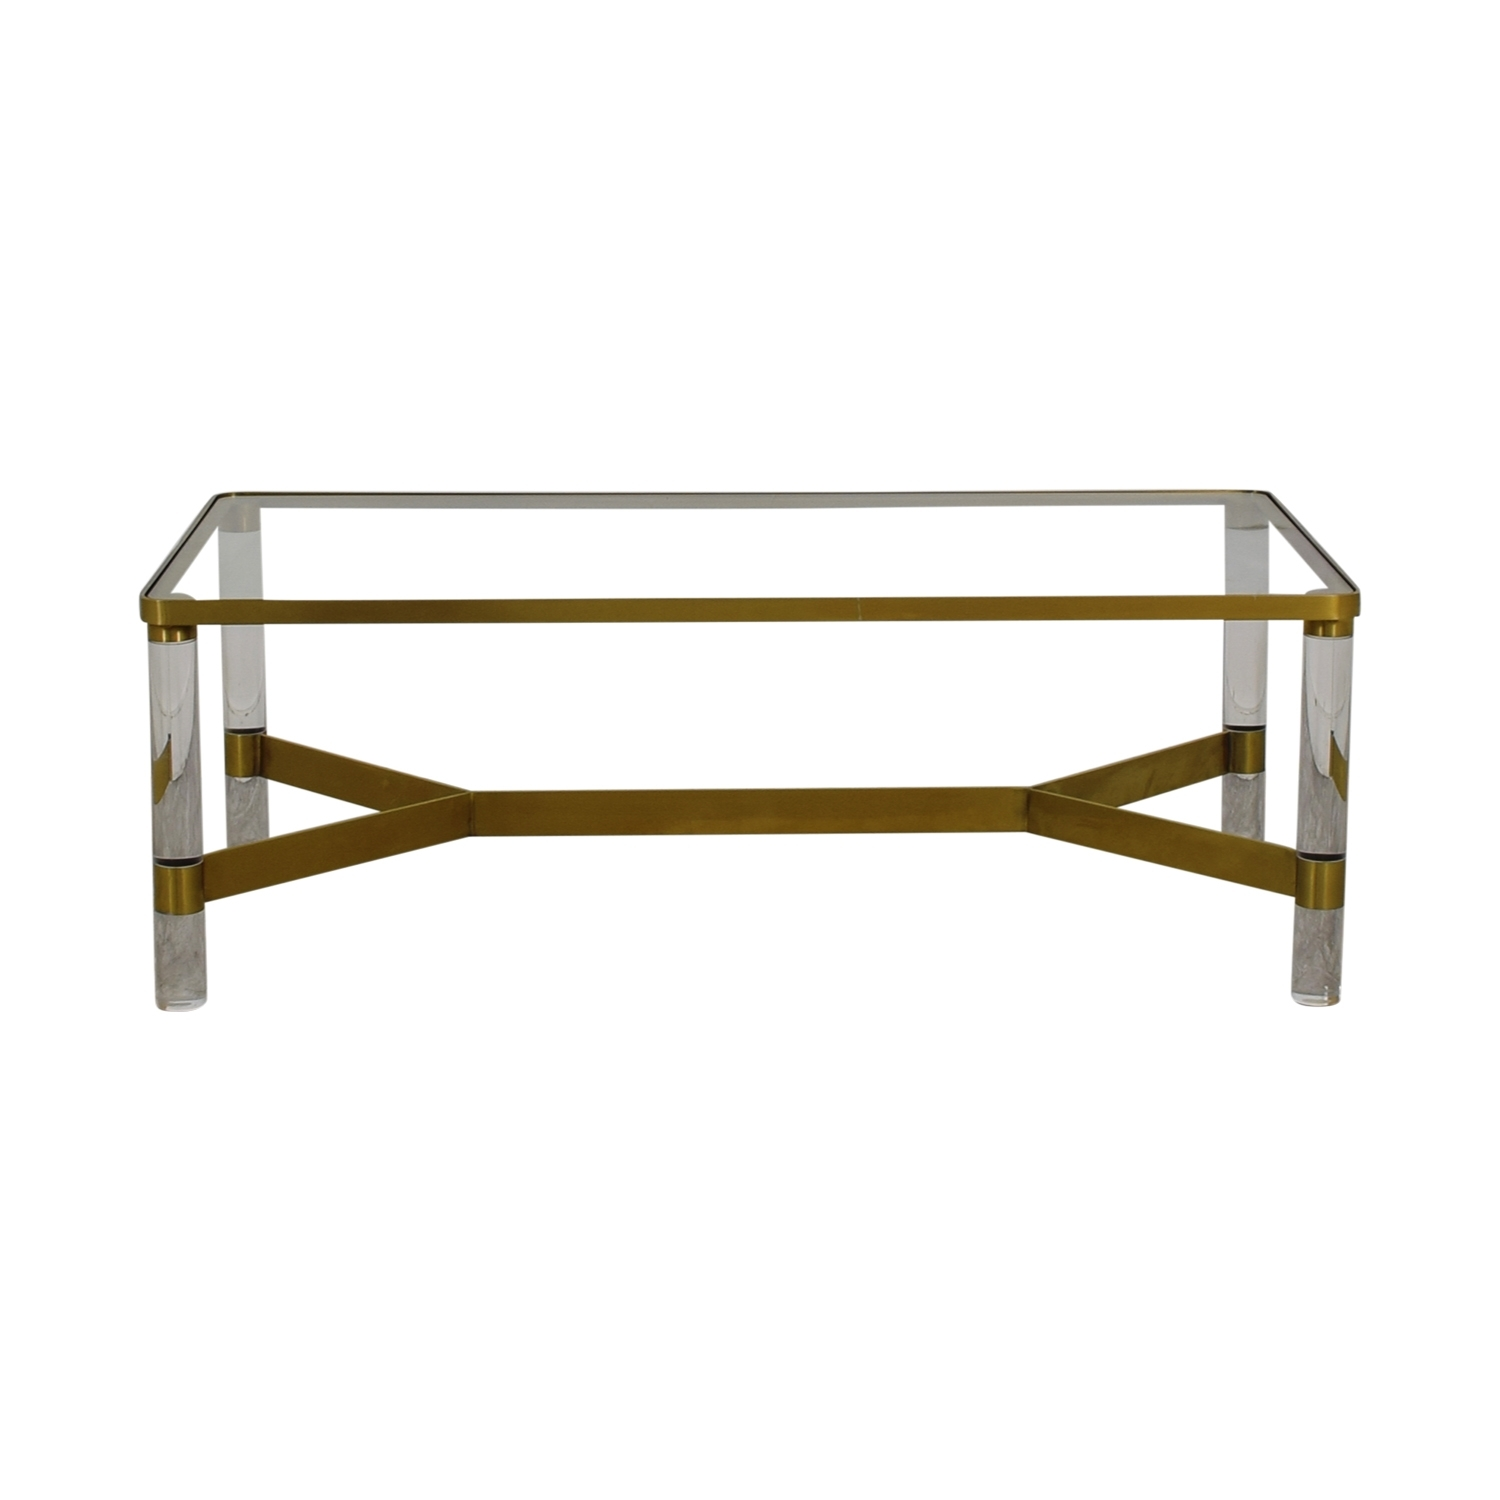 67% Off - Anthropologie Anthropologie Oscarine Glass Acrylic & Brass regarding Acrylic Glass and Brass Coffee Tables (Image 2 of 30)